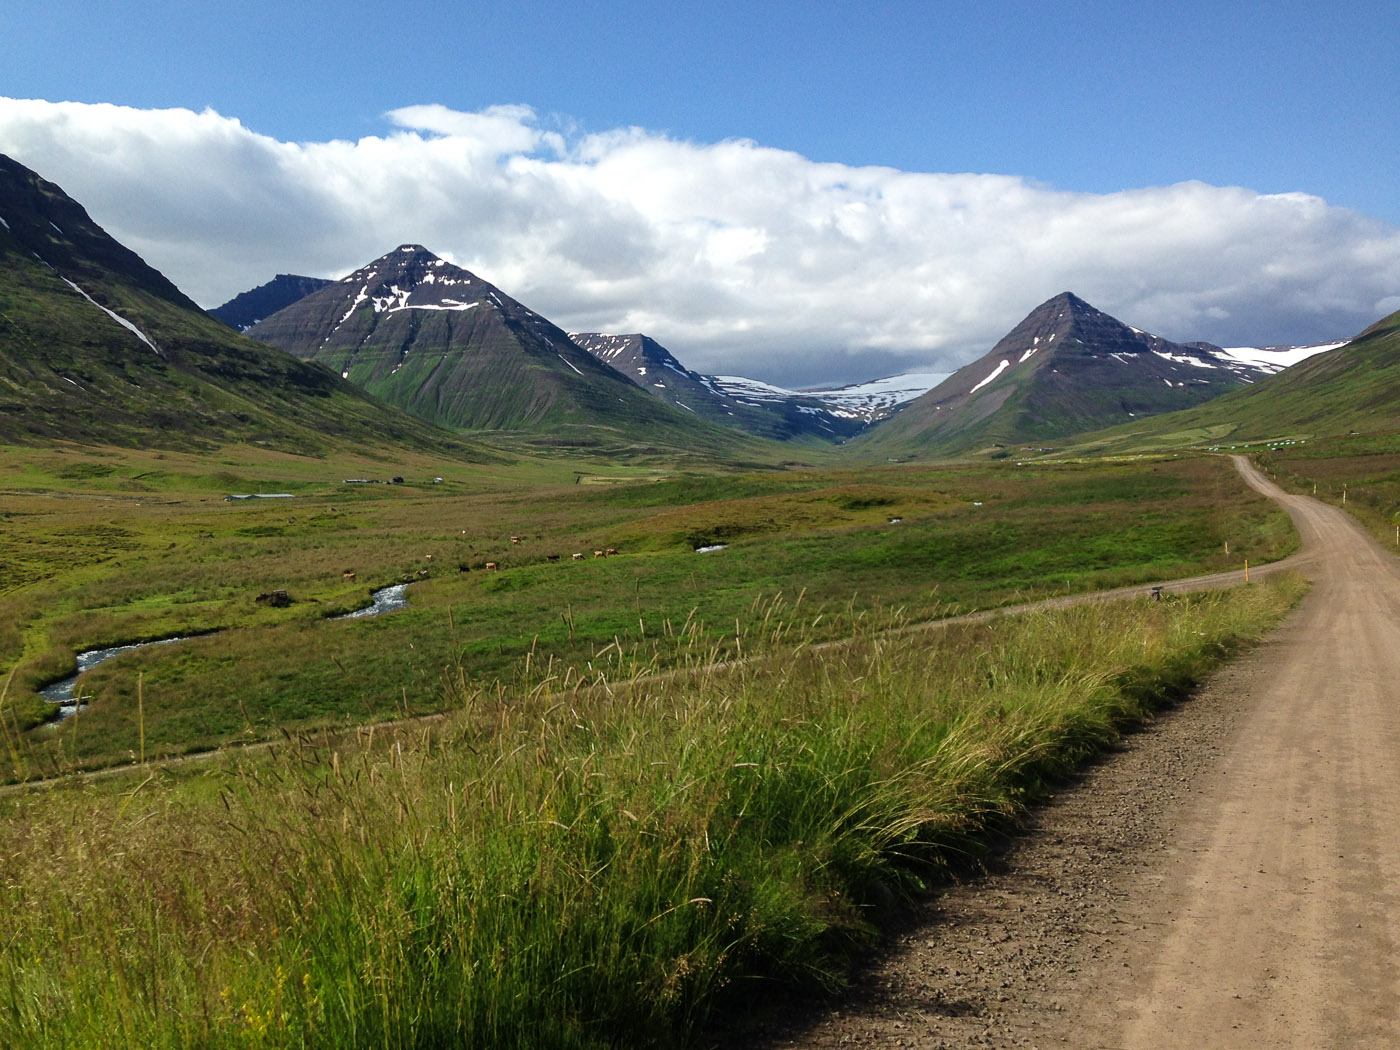 Northern Iceland - Svarfaðardalur - Grímstunga. On vacation. - Leaving Skeið :-( ... Bless bless! (23 July 2014)